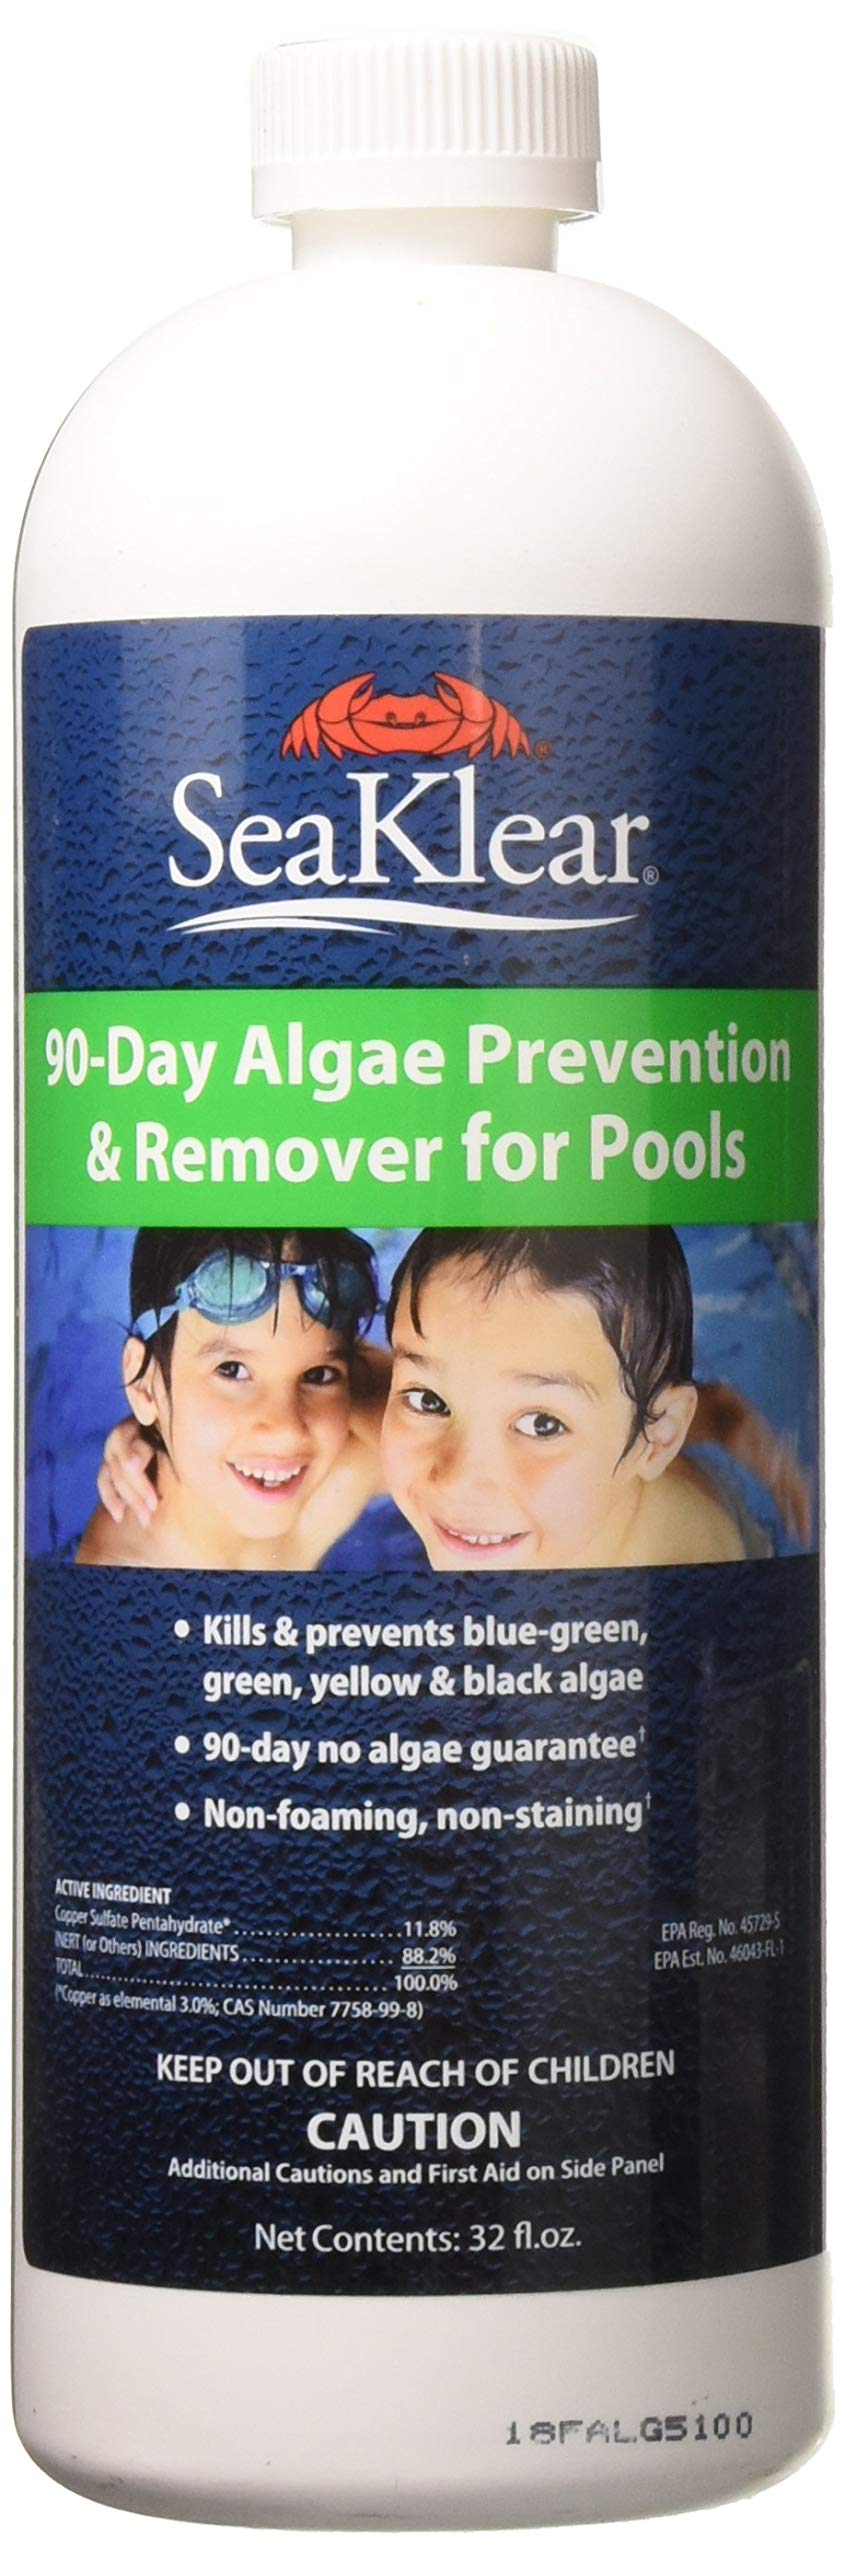 SeaKlear 90-Day Algae Prevention & Remover, 1 Qt by SeaKlear